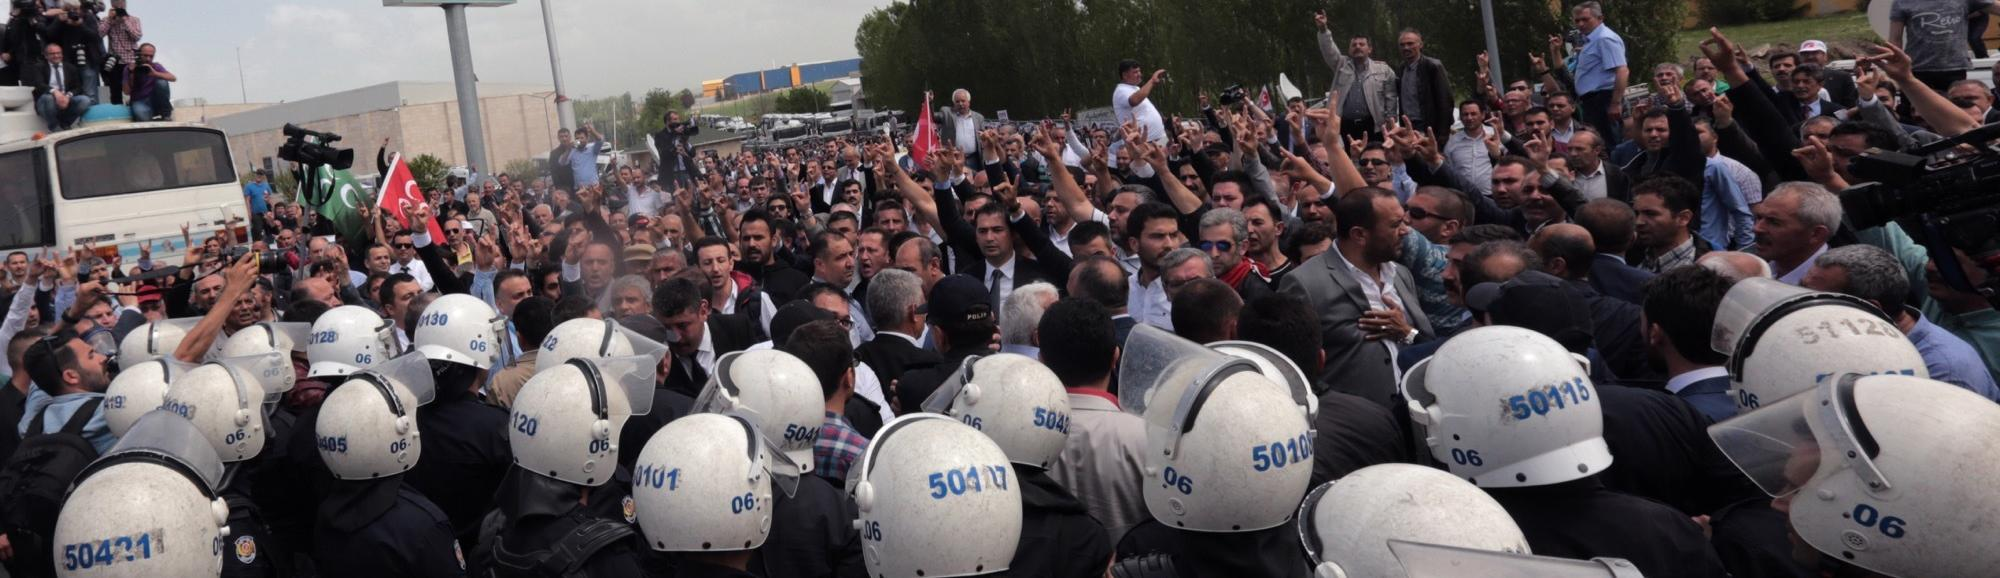 Turkish Police Blocked Entry to a Party Meeting That Threatened Erdogan's Presidential Plans